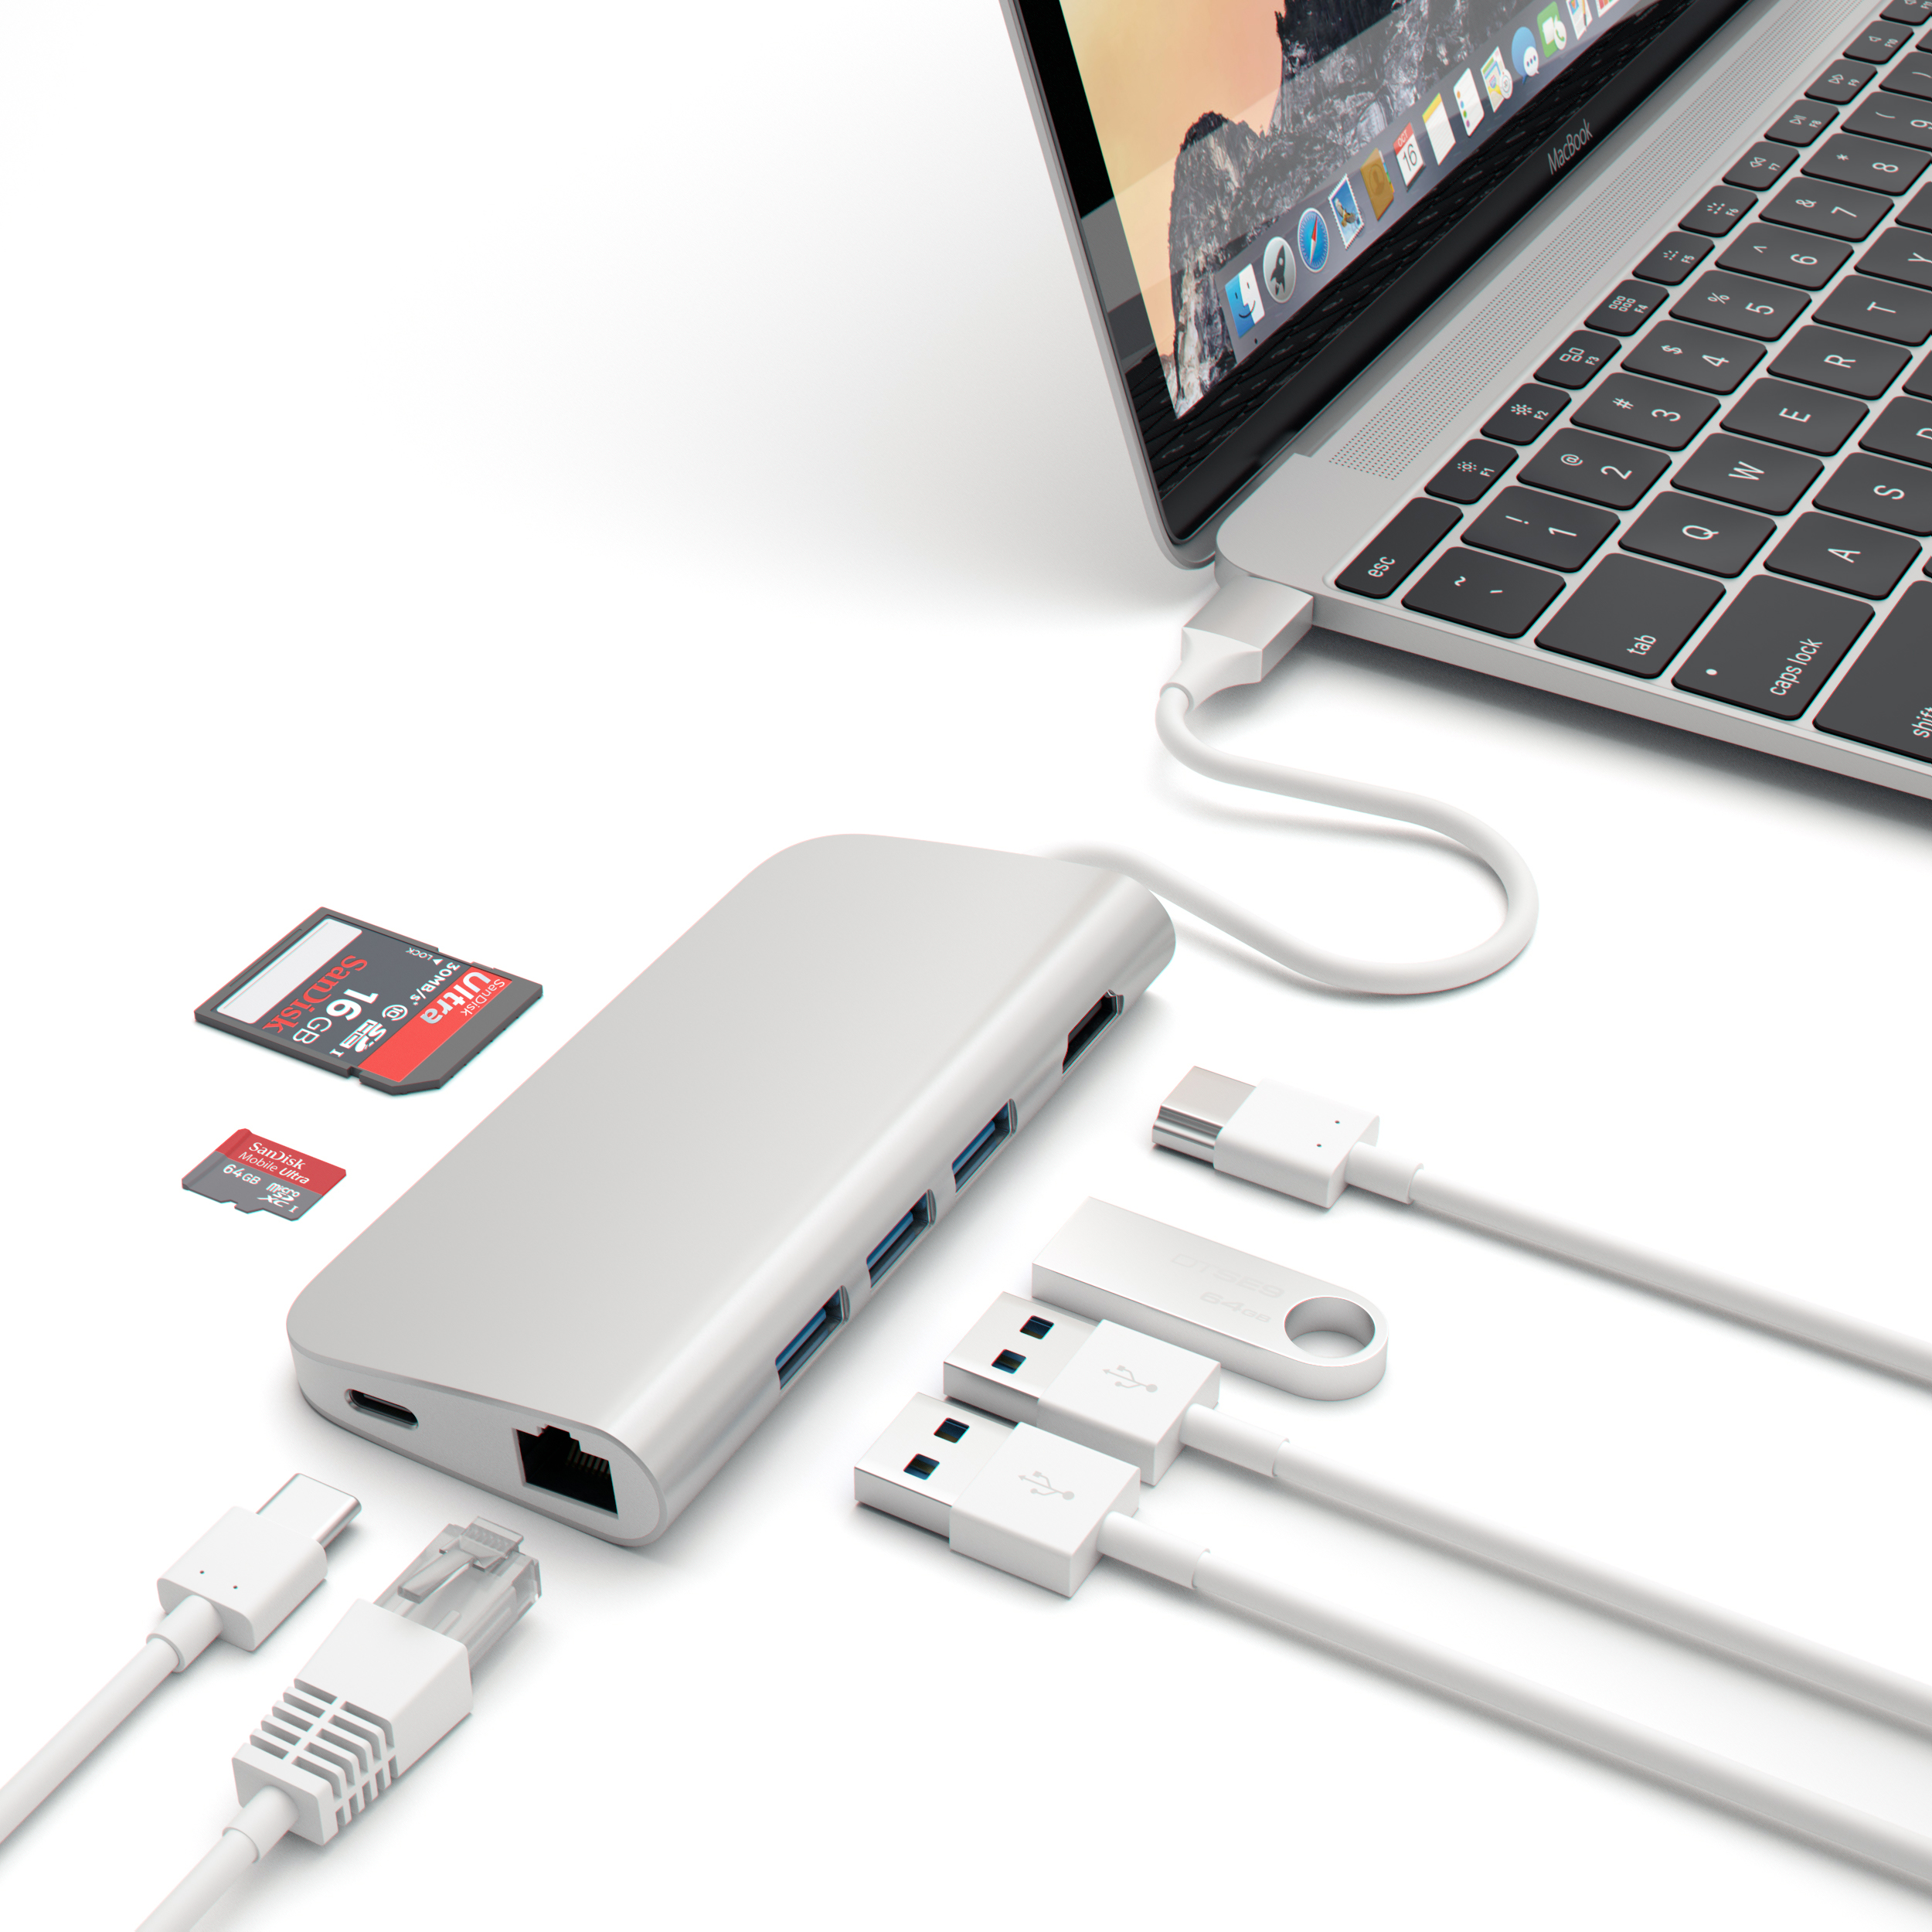 Satechi Aluminum Multi-Port Adapter 4K HDMI (30Hz), Type-C Pass Through, Gigabit Ethernet, SD/Micro Card Reader, and 3 USB 3.0 Ports for 2016/2017 MacBook Pro, 2015/2016/2017 MacBook and more (Silver)